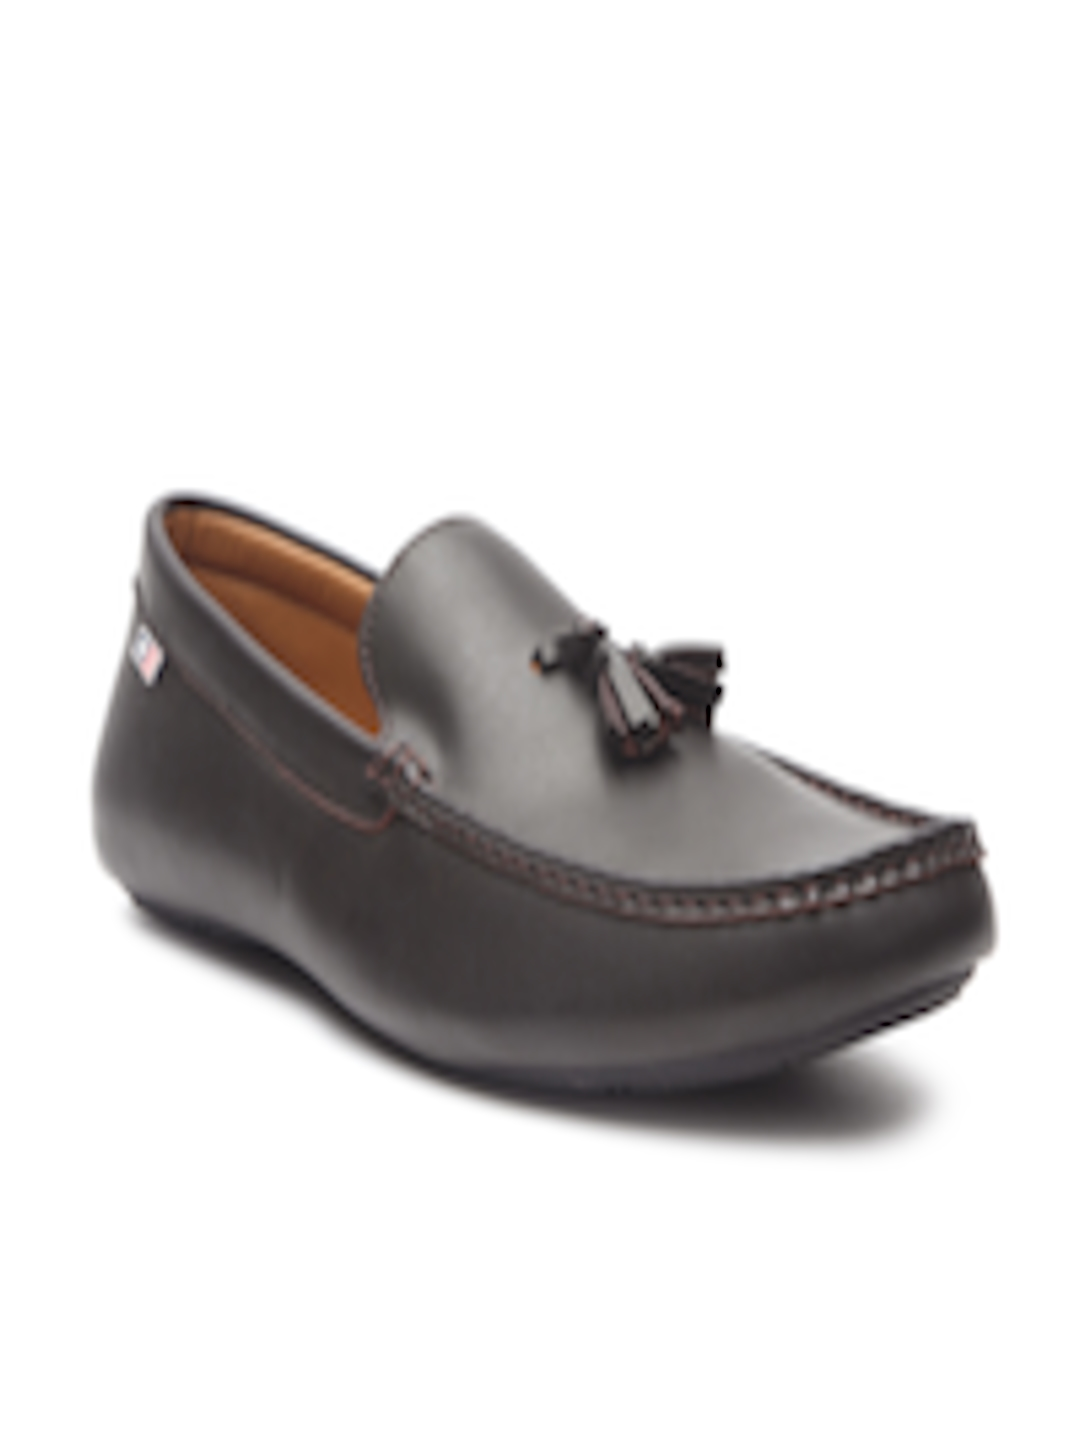 3639e958b5c Buy Arrow Men Coffee Brown Leather Tassel Loafers - Casual Shoes for Men  2405372